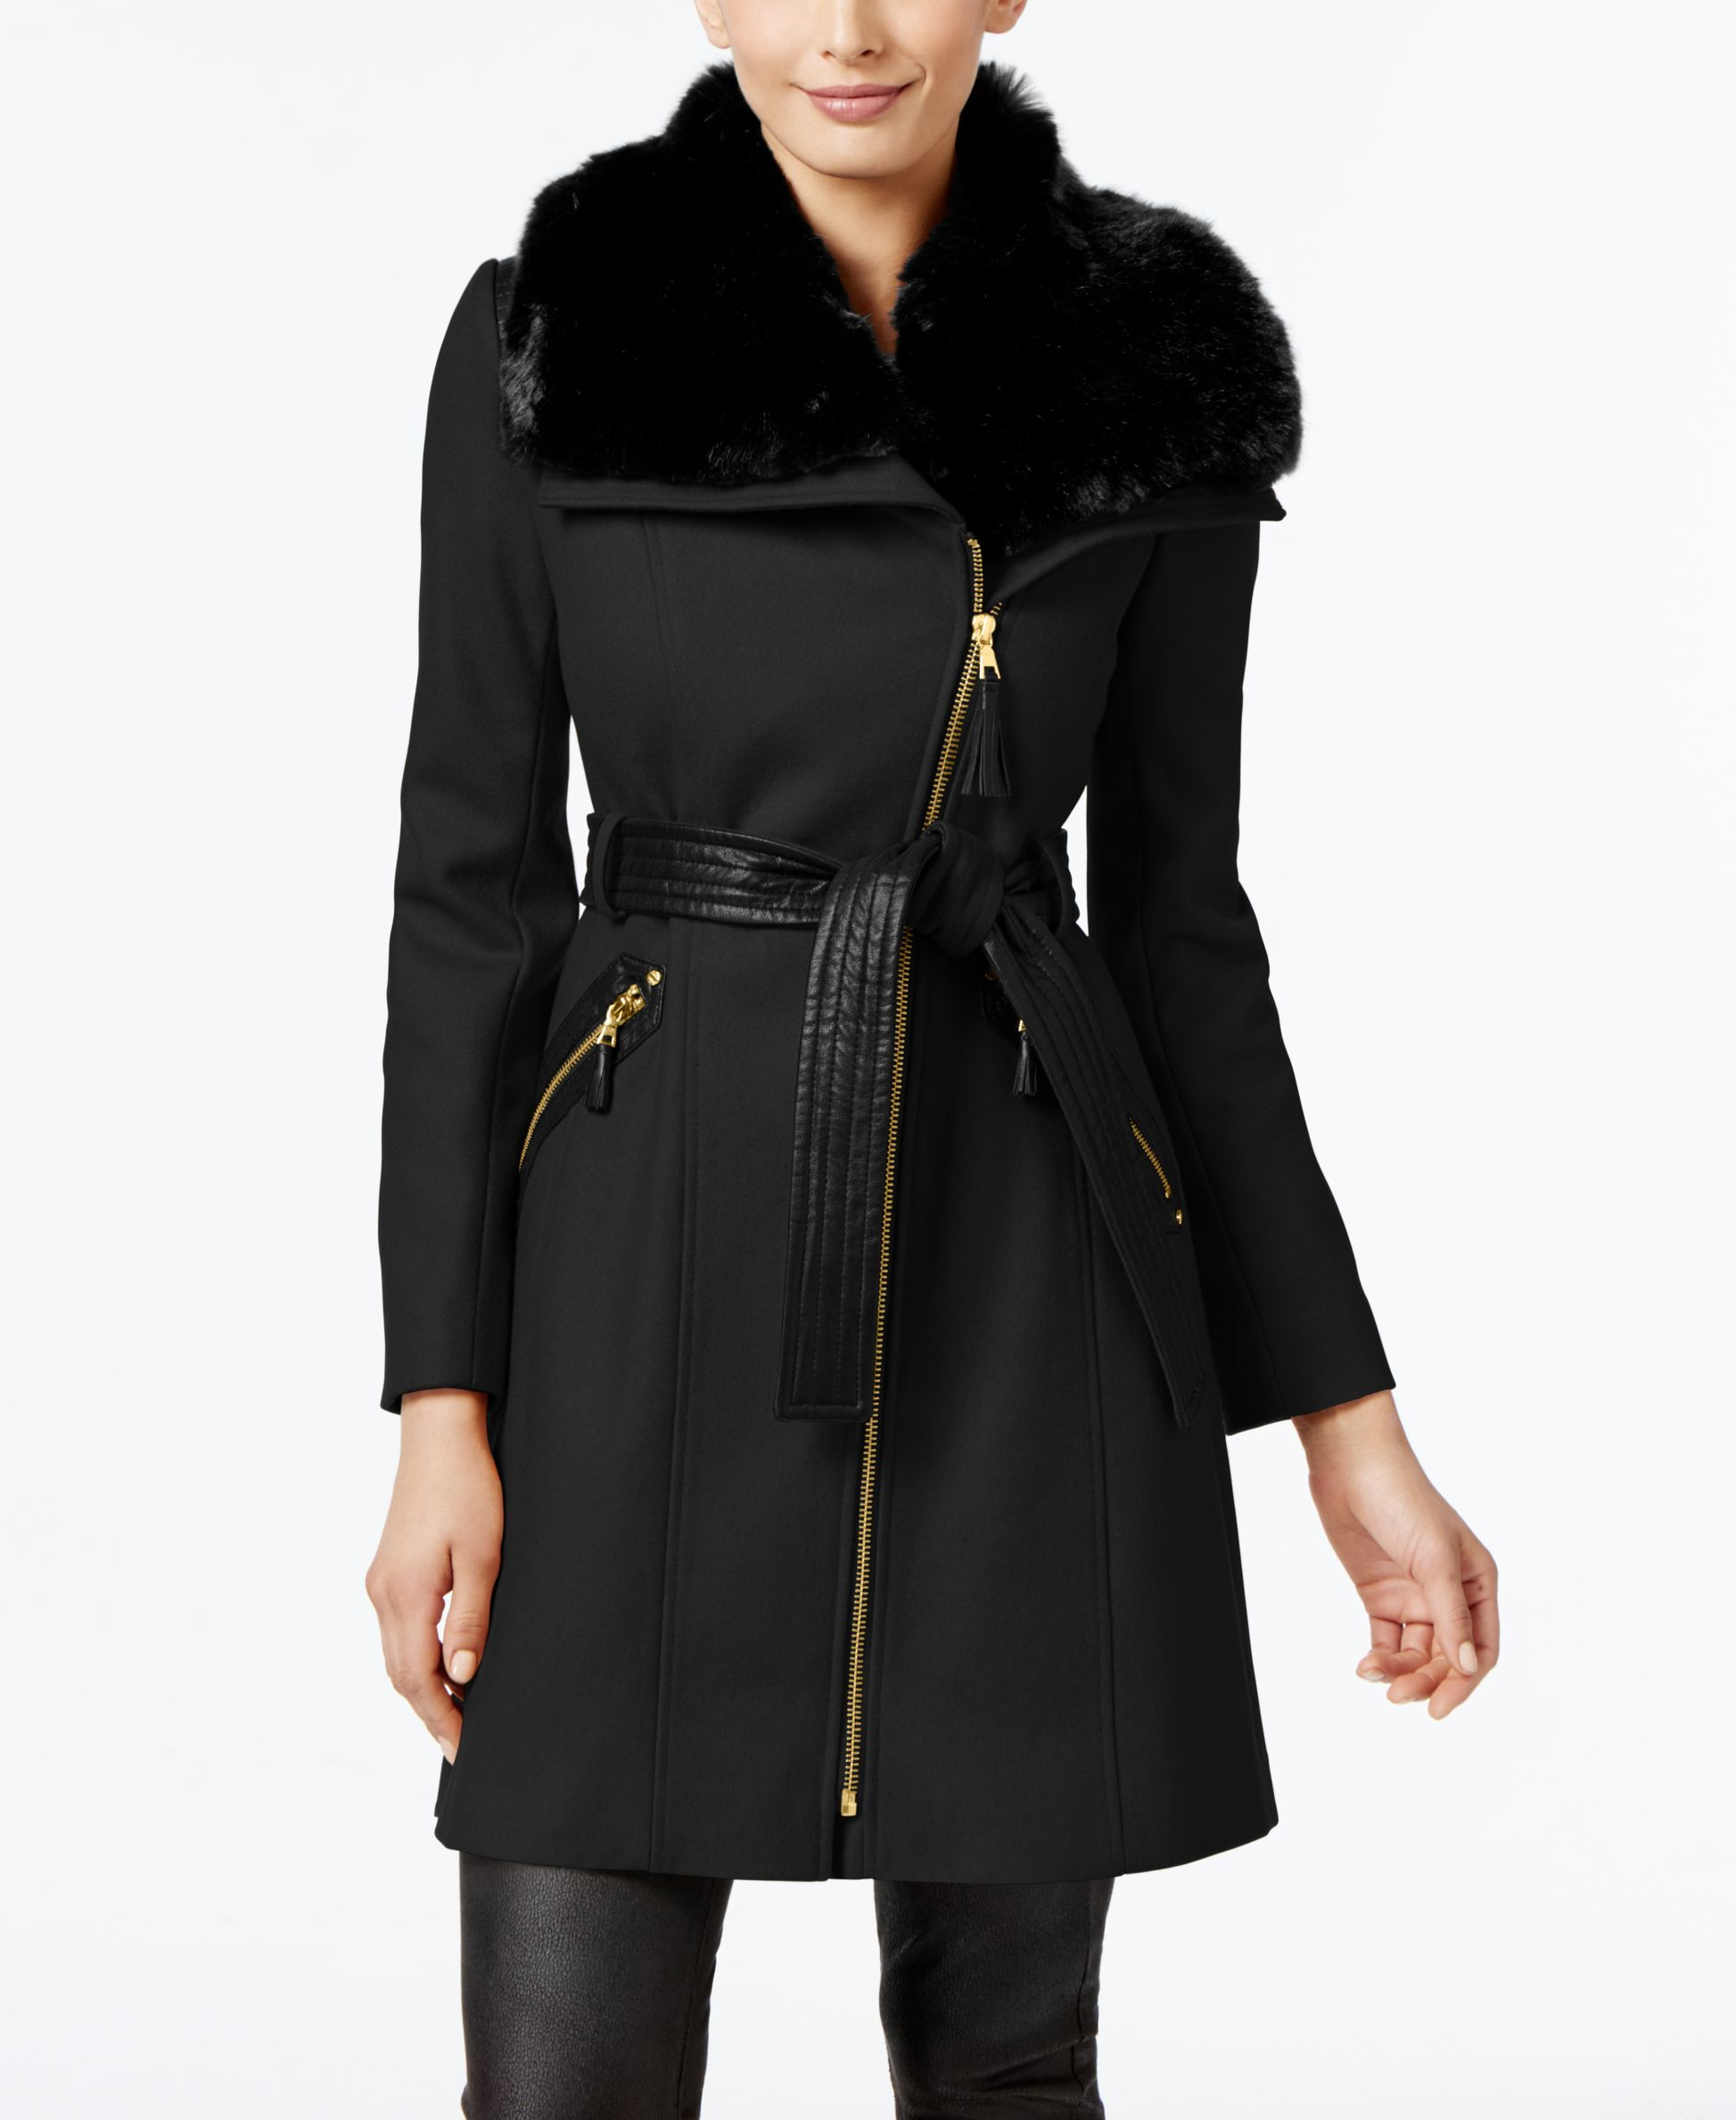 3dfabed81c8 Via Spiga's petite coat is updated with gorgeous details like faux fur and  tonal faux leather to create a look that's cozy yet sophisticated.